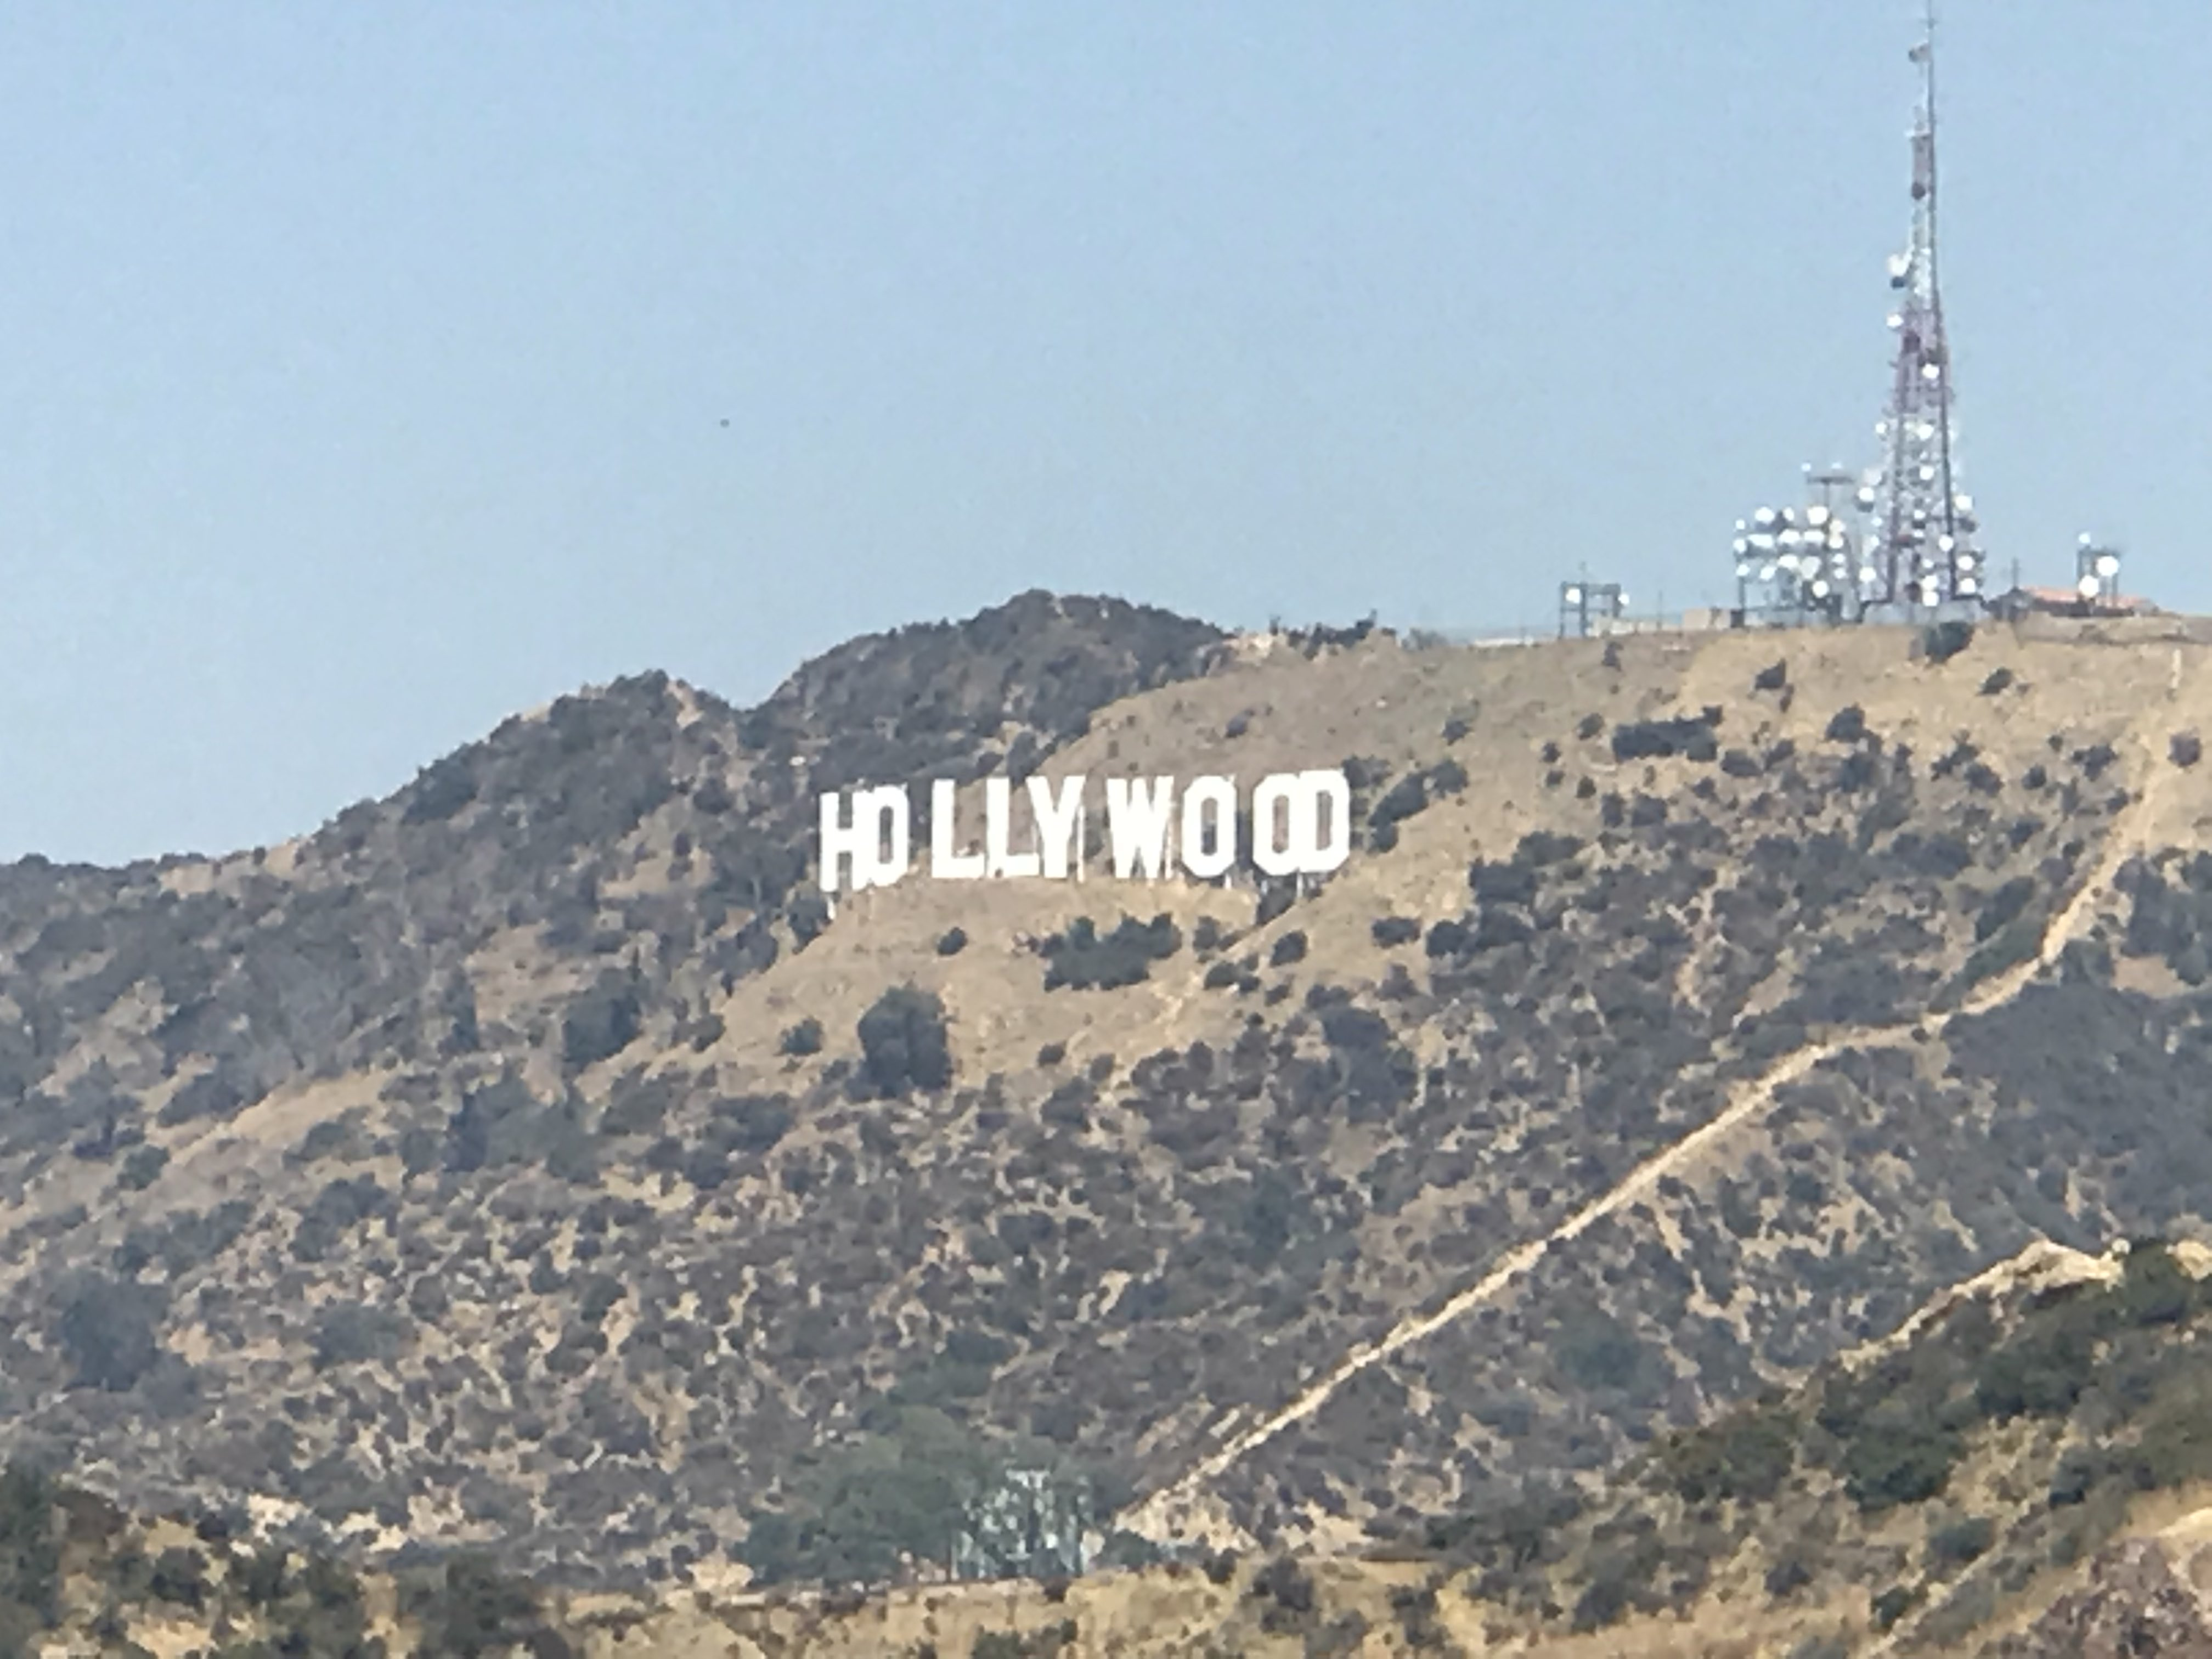 Hellowood Hollywood.